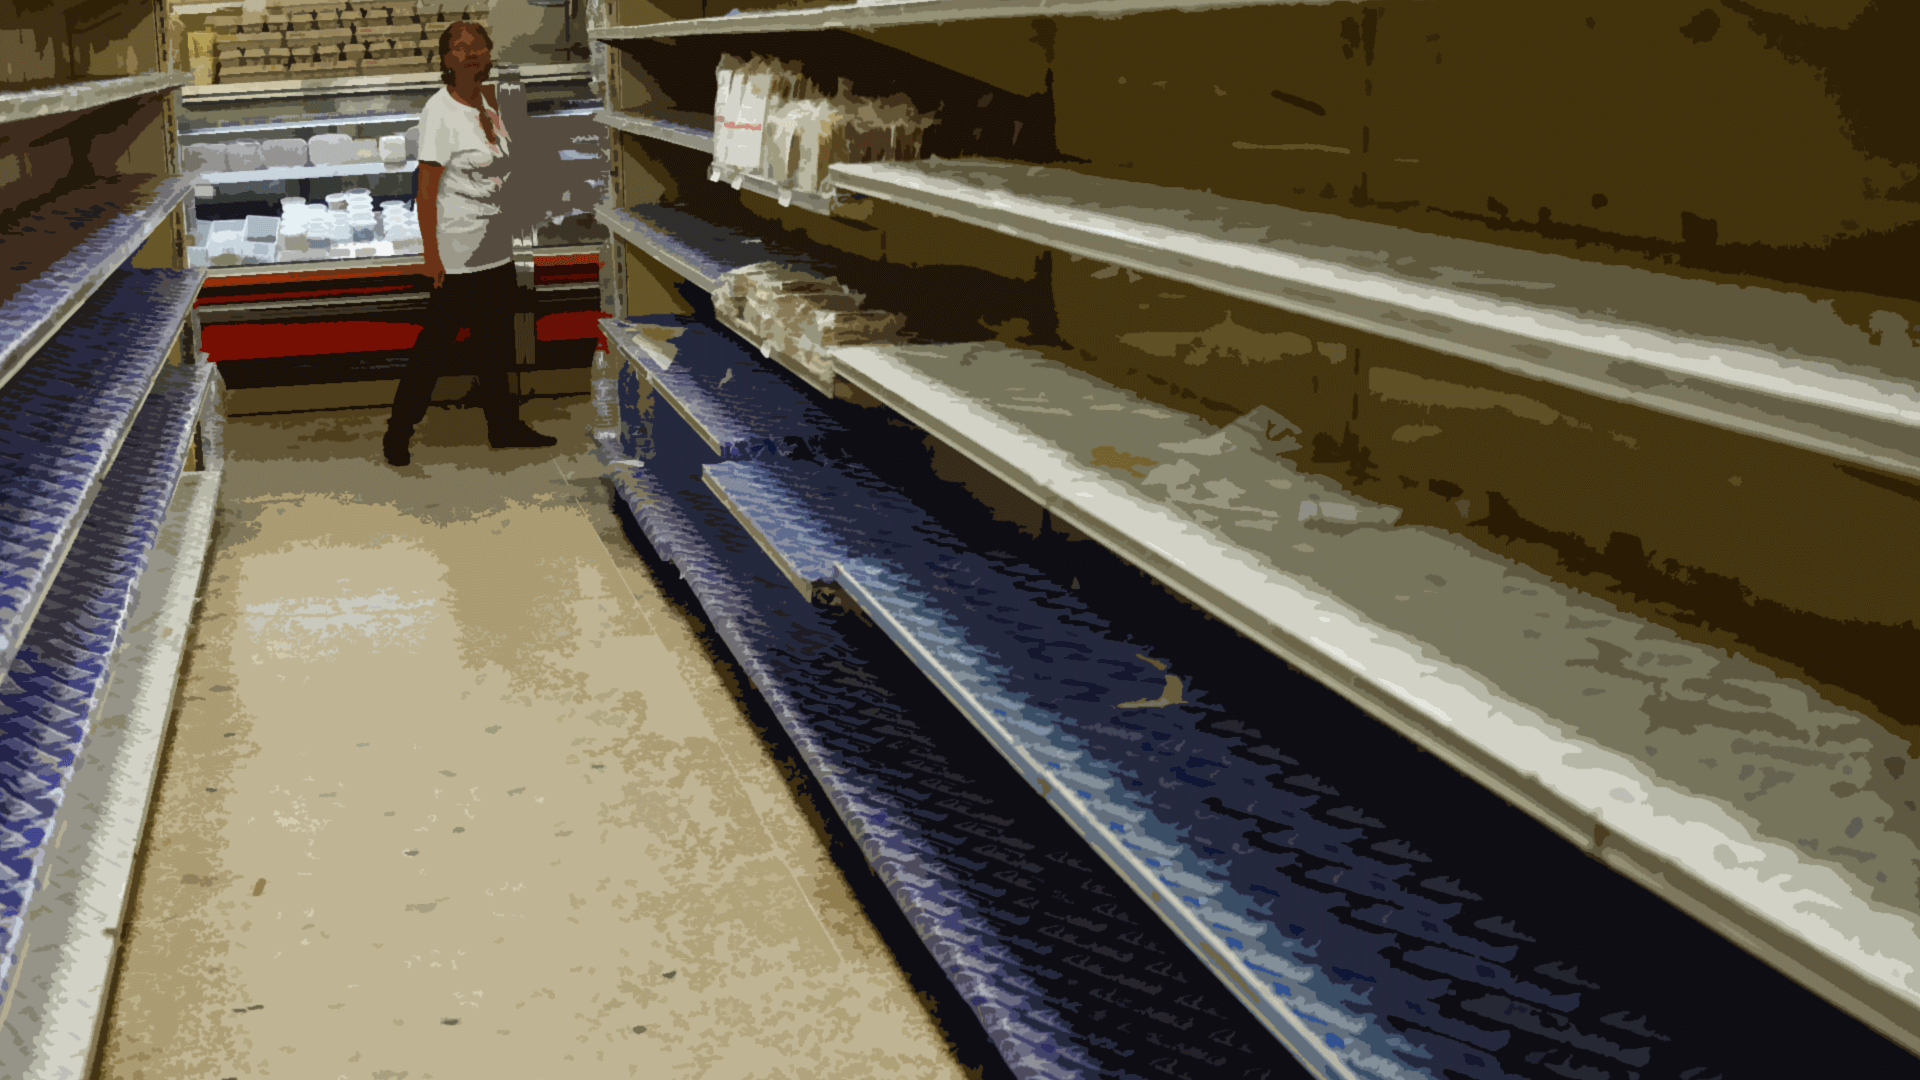 Empty shelves in a Venezuelan grocery